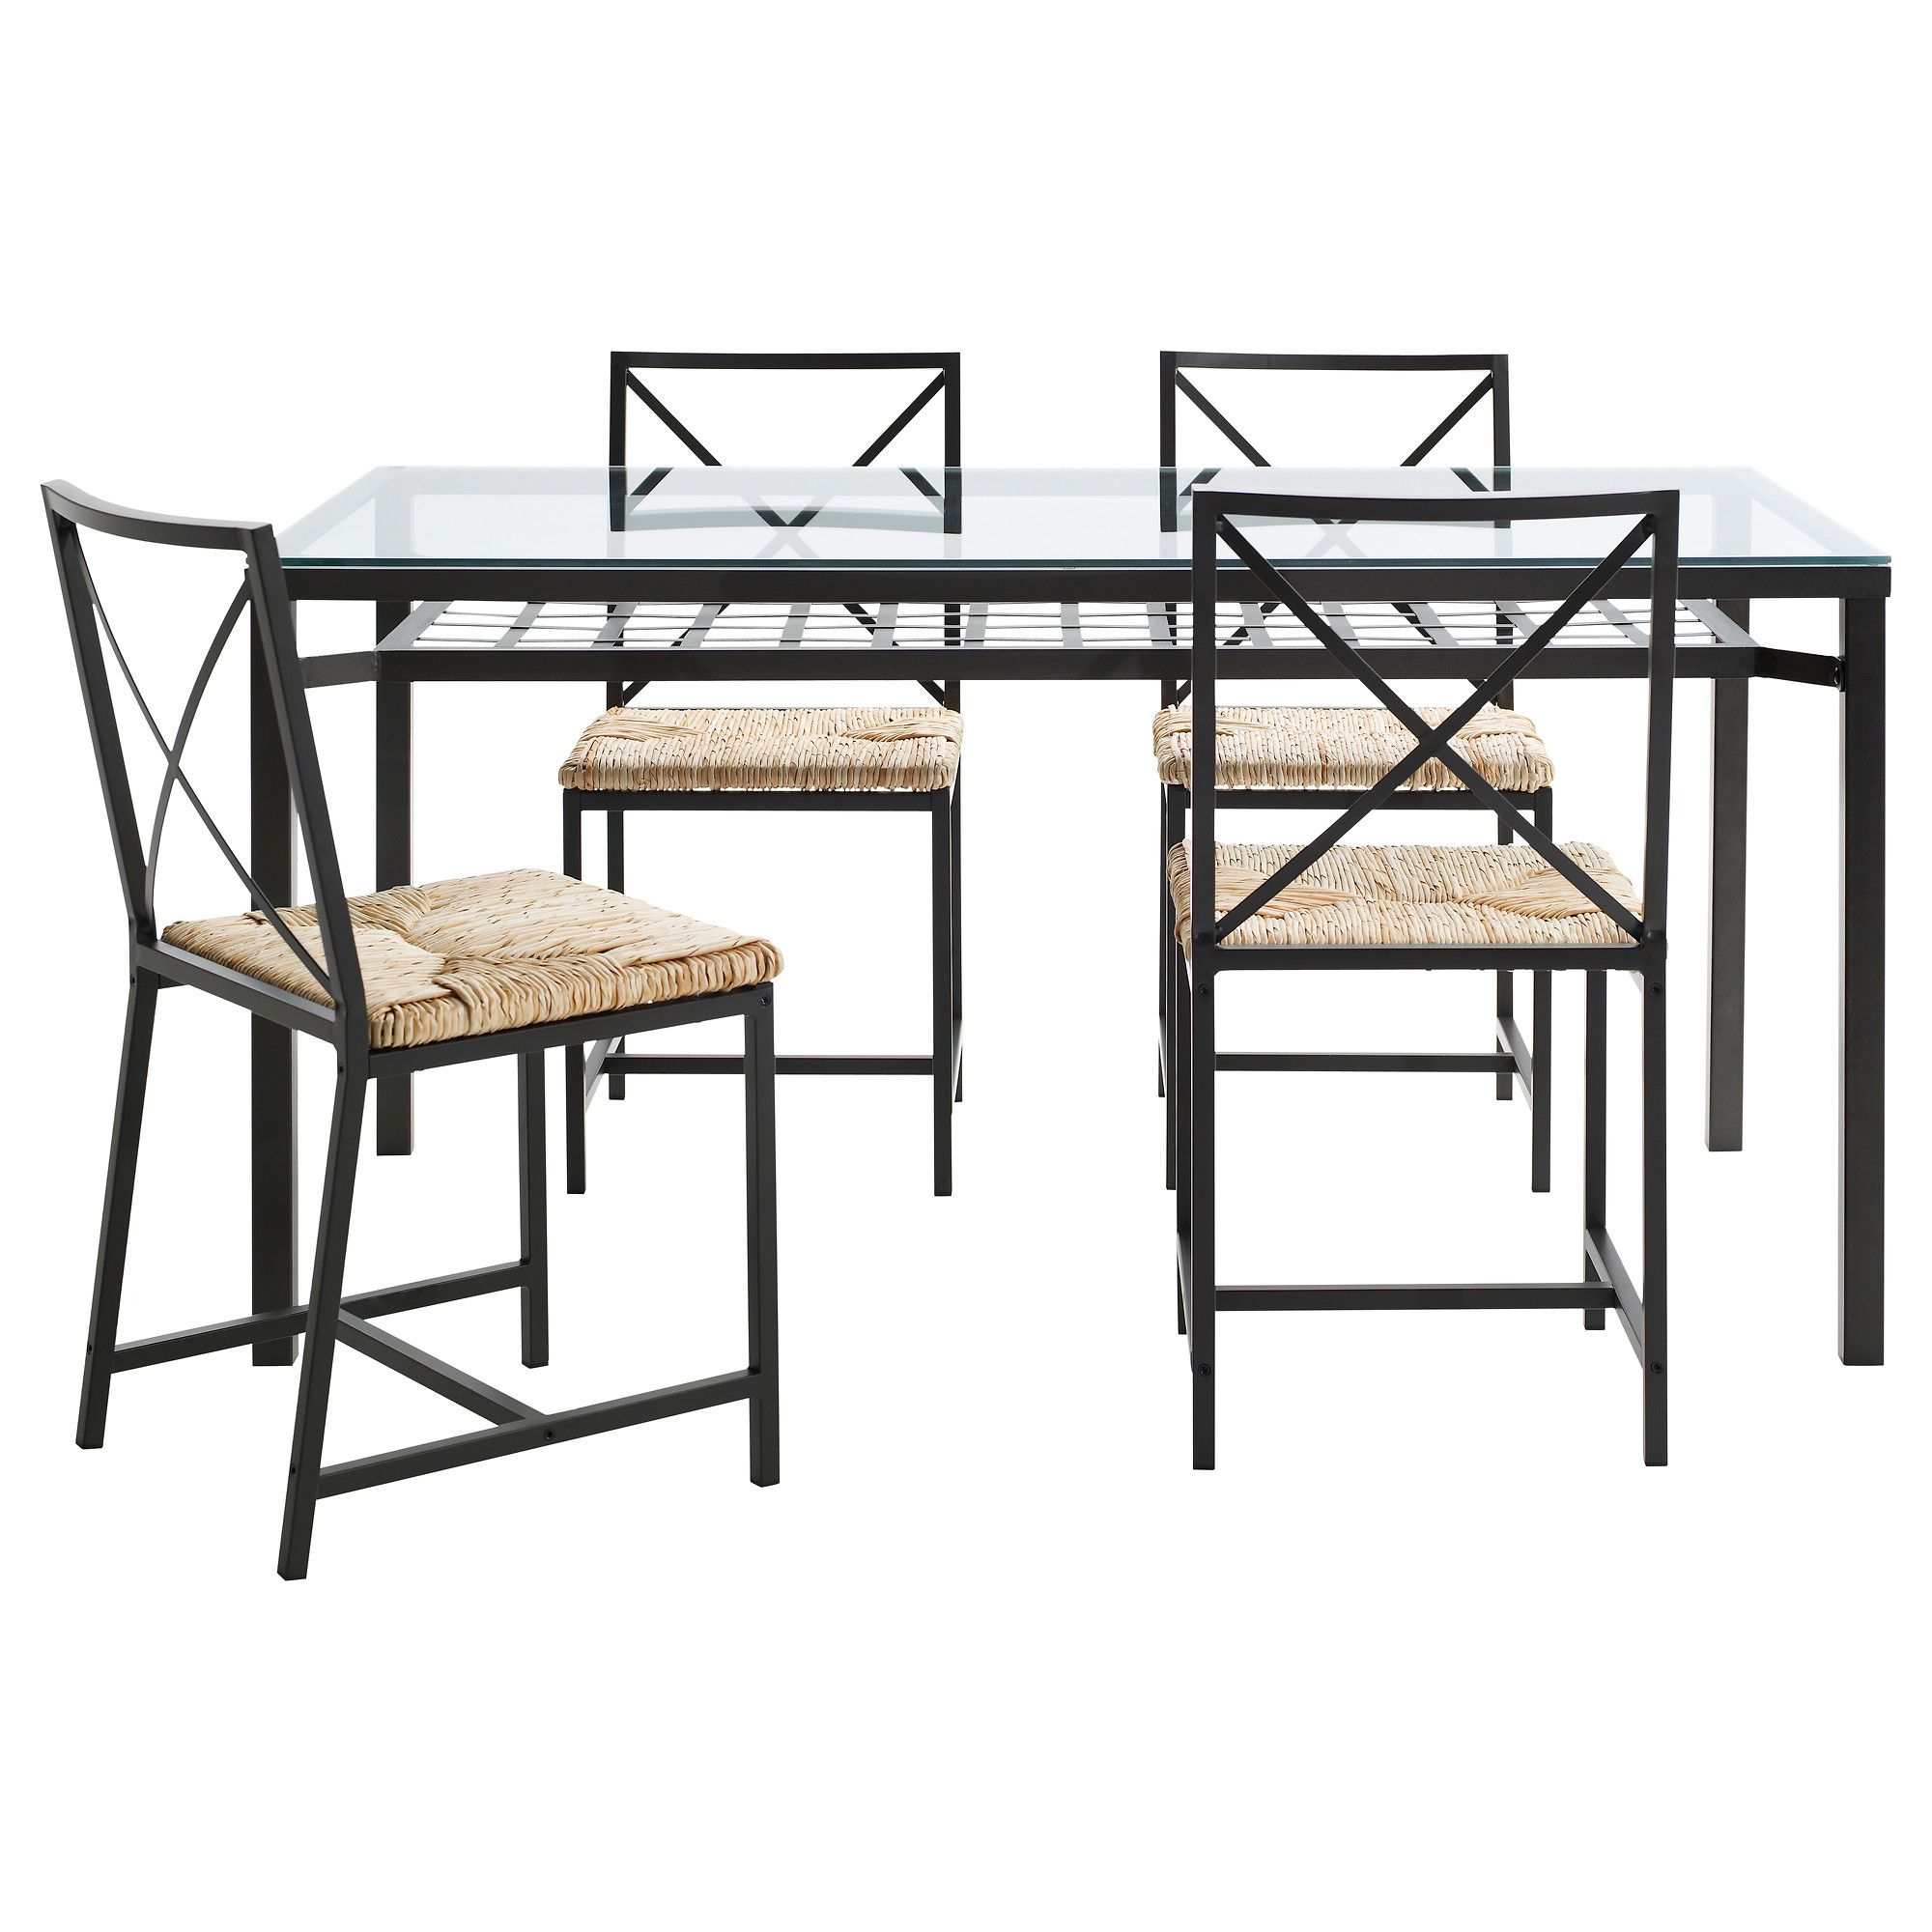 Meubles Et Articles D Ameublement Inspirez Vous Ikea Glass Dining Table Dining Table Chairs Ikea Dining Table Set